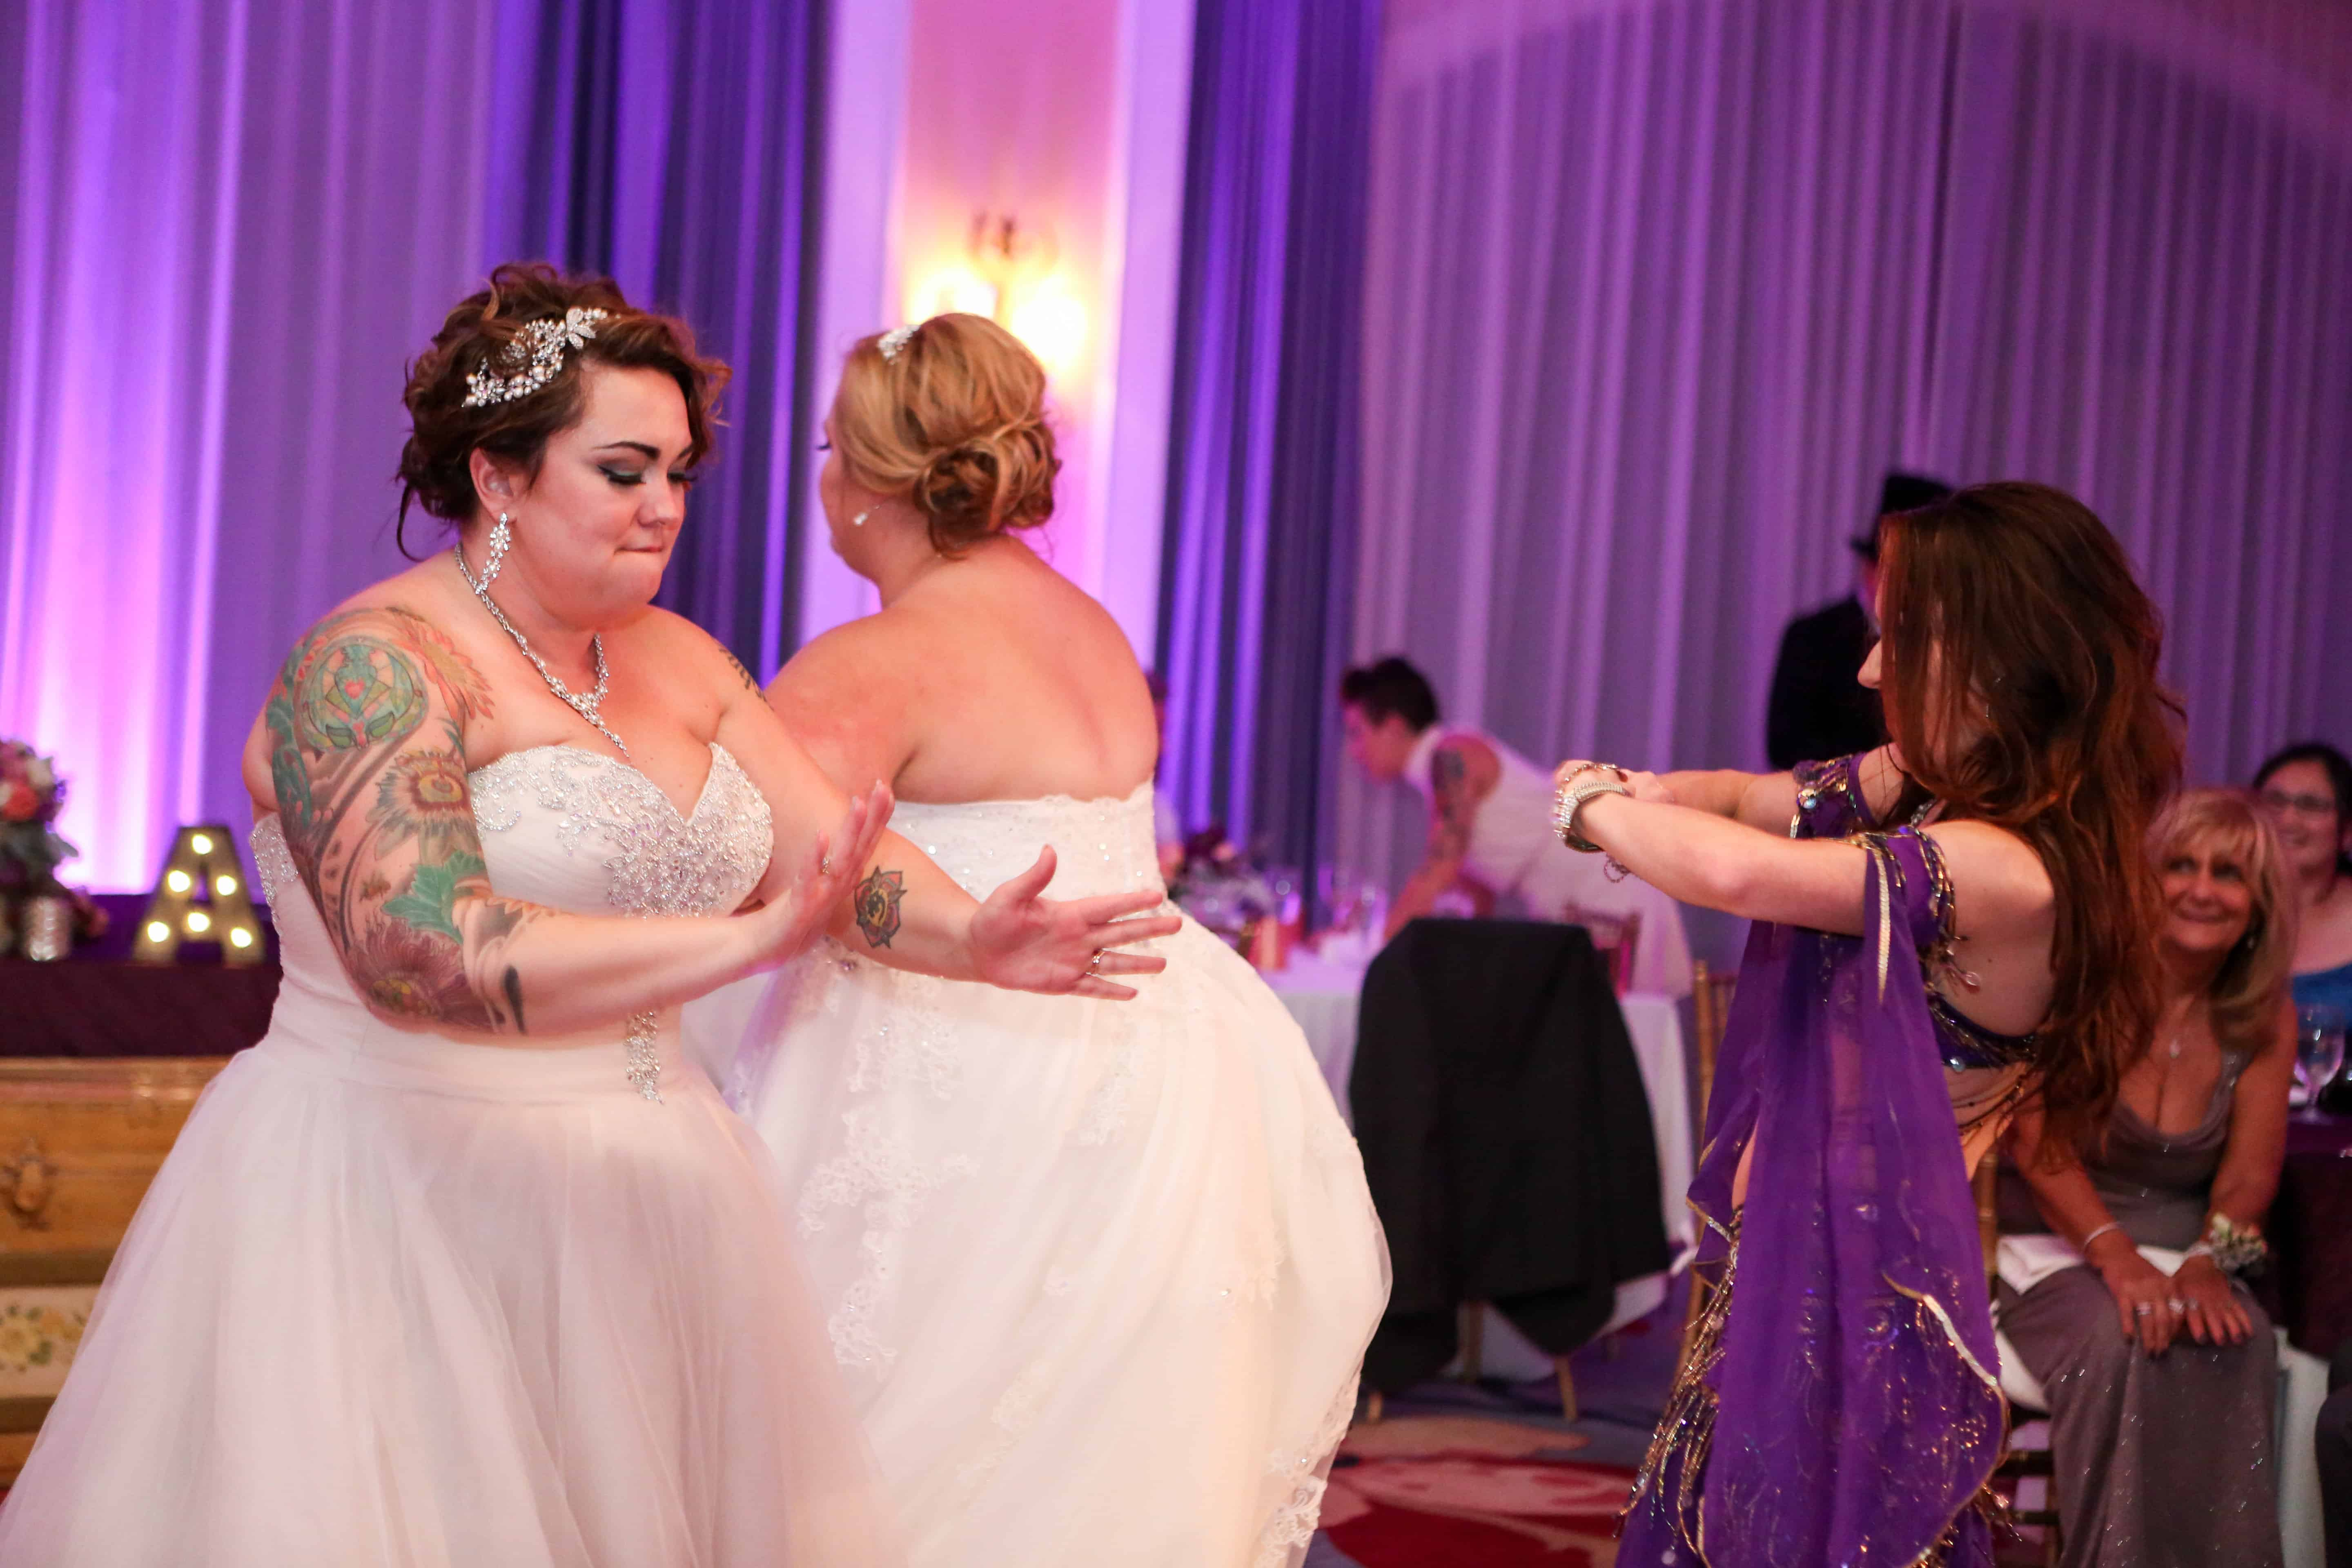 Carrara performs belly dance at an LGBT wedding at Omni Championsgate. Photo by LiveHappy Studio